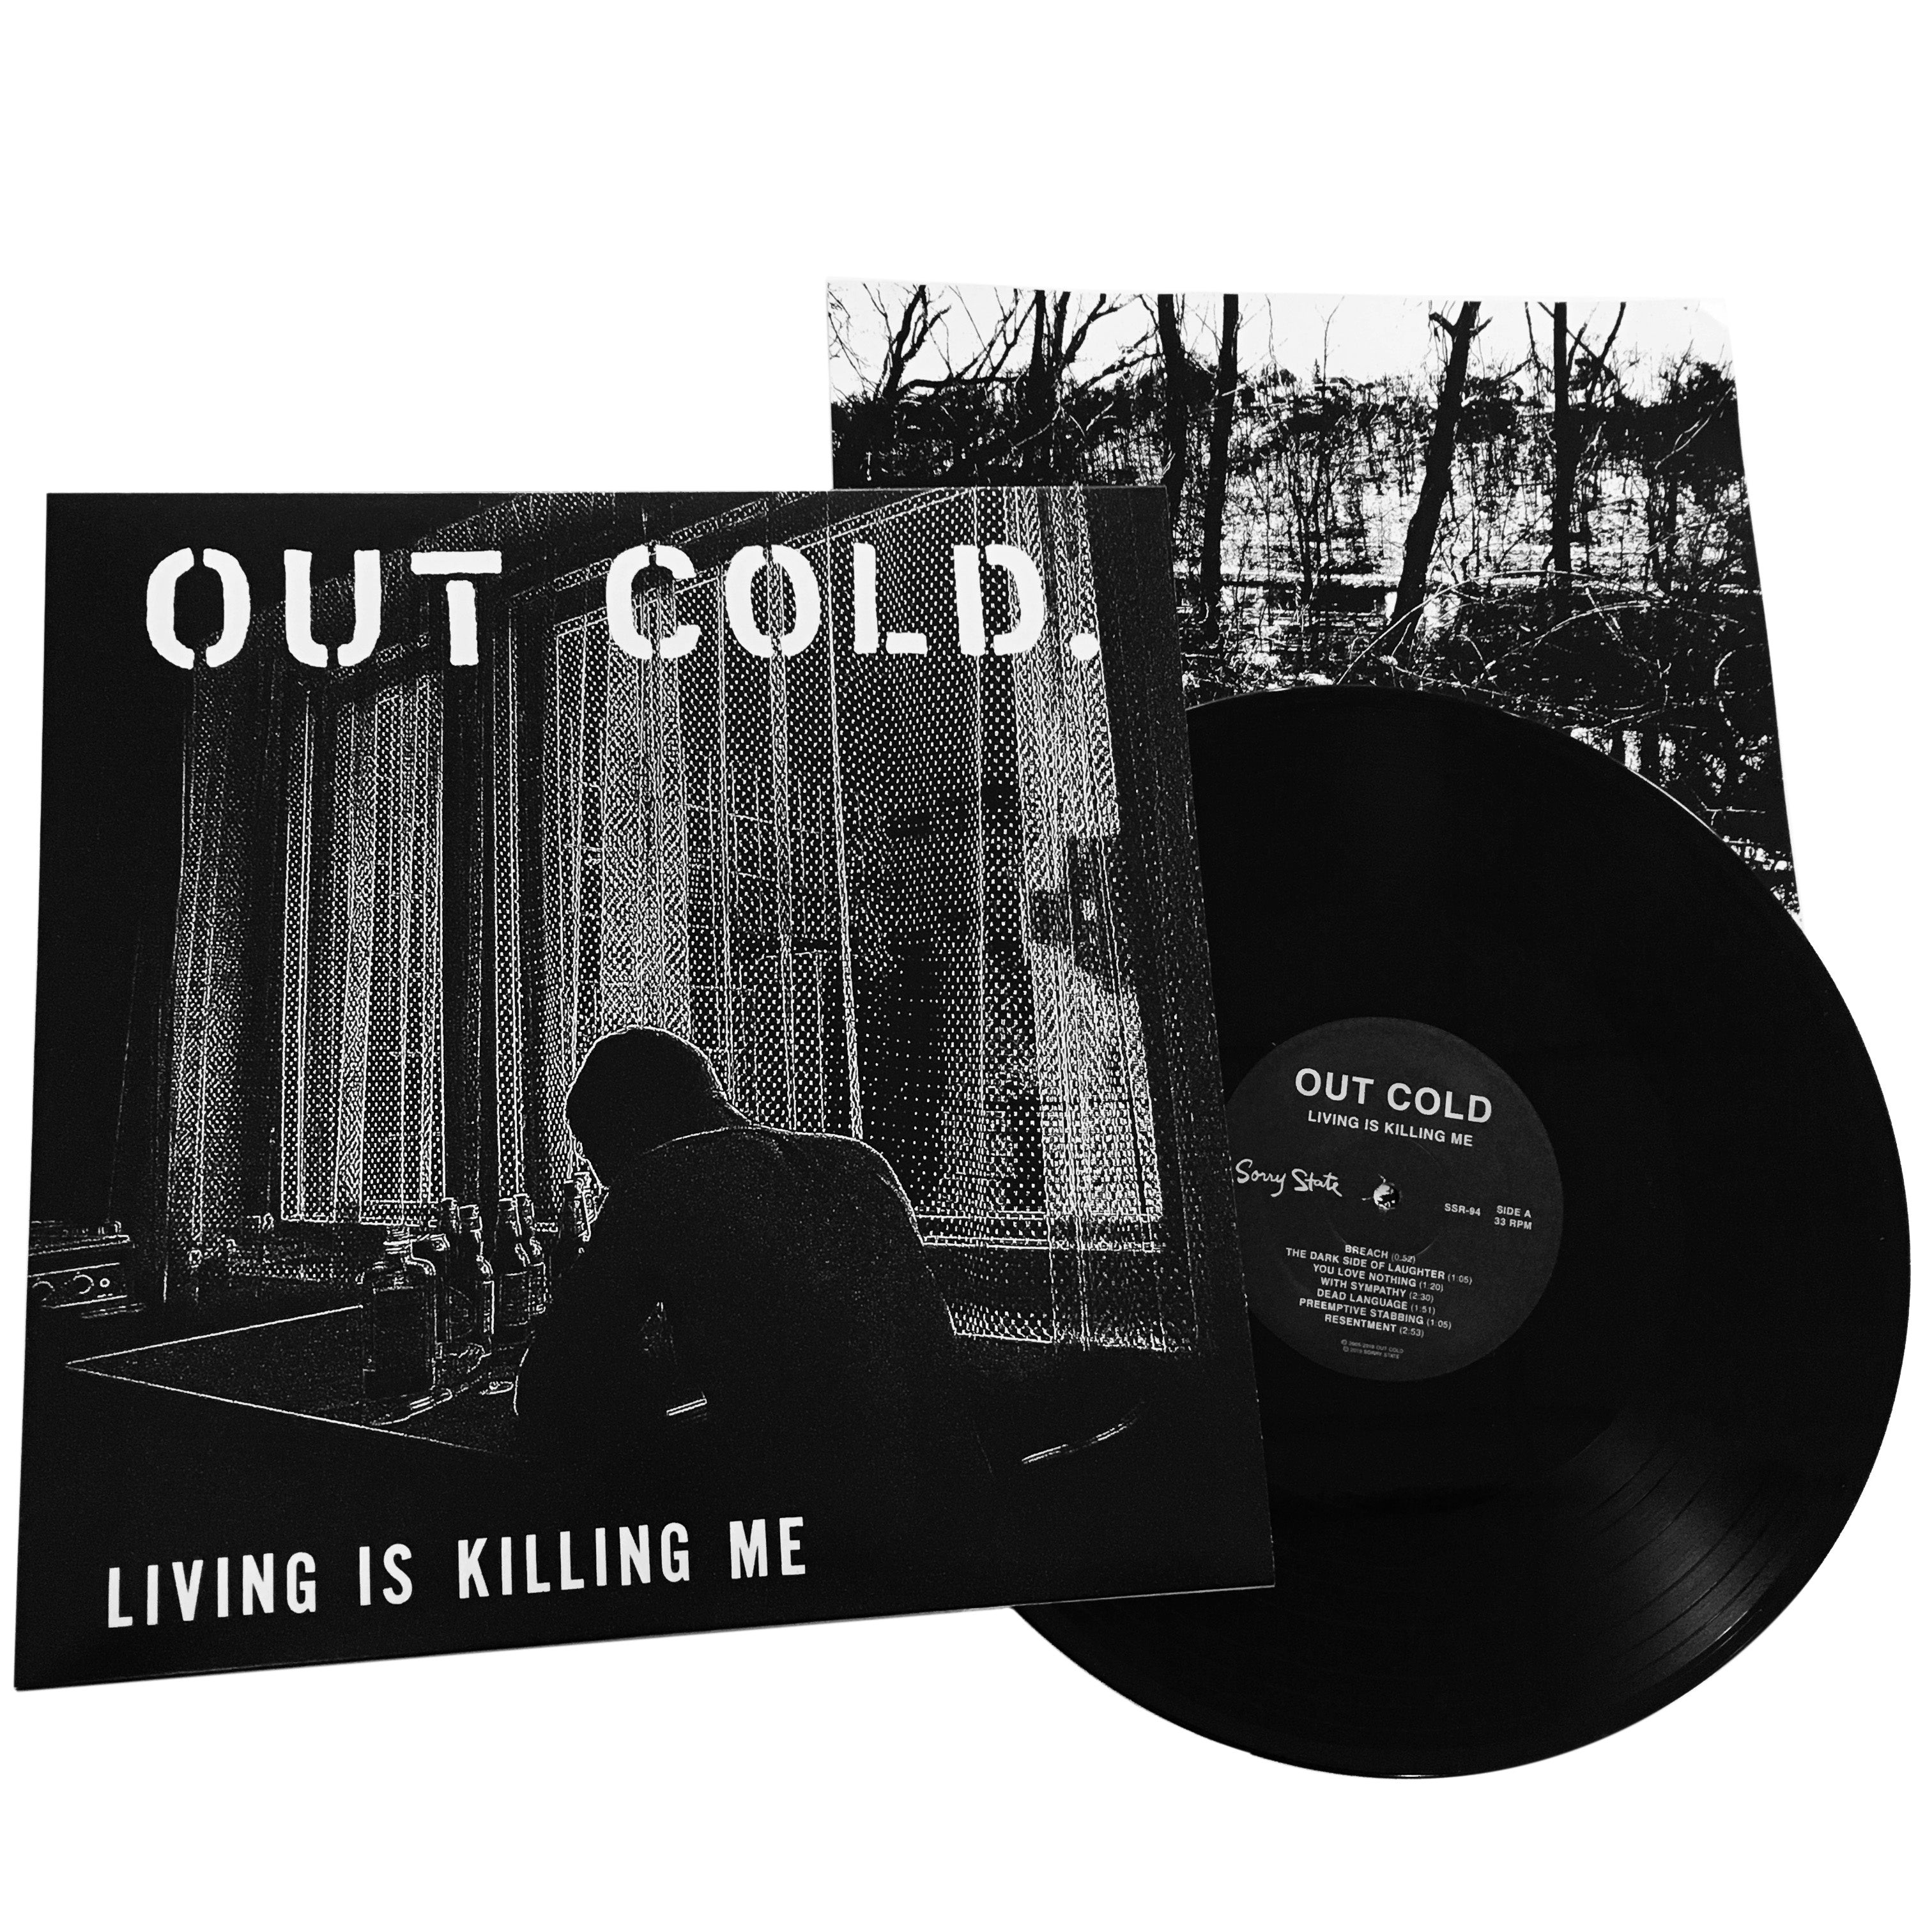 Out Cold: Living Is Killing Me 12